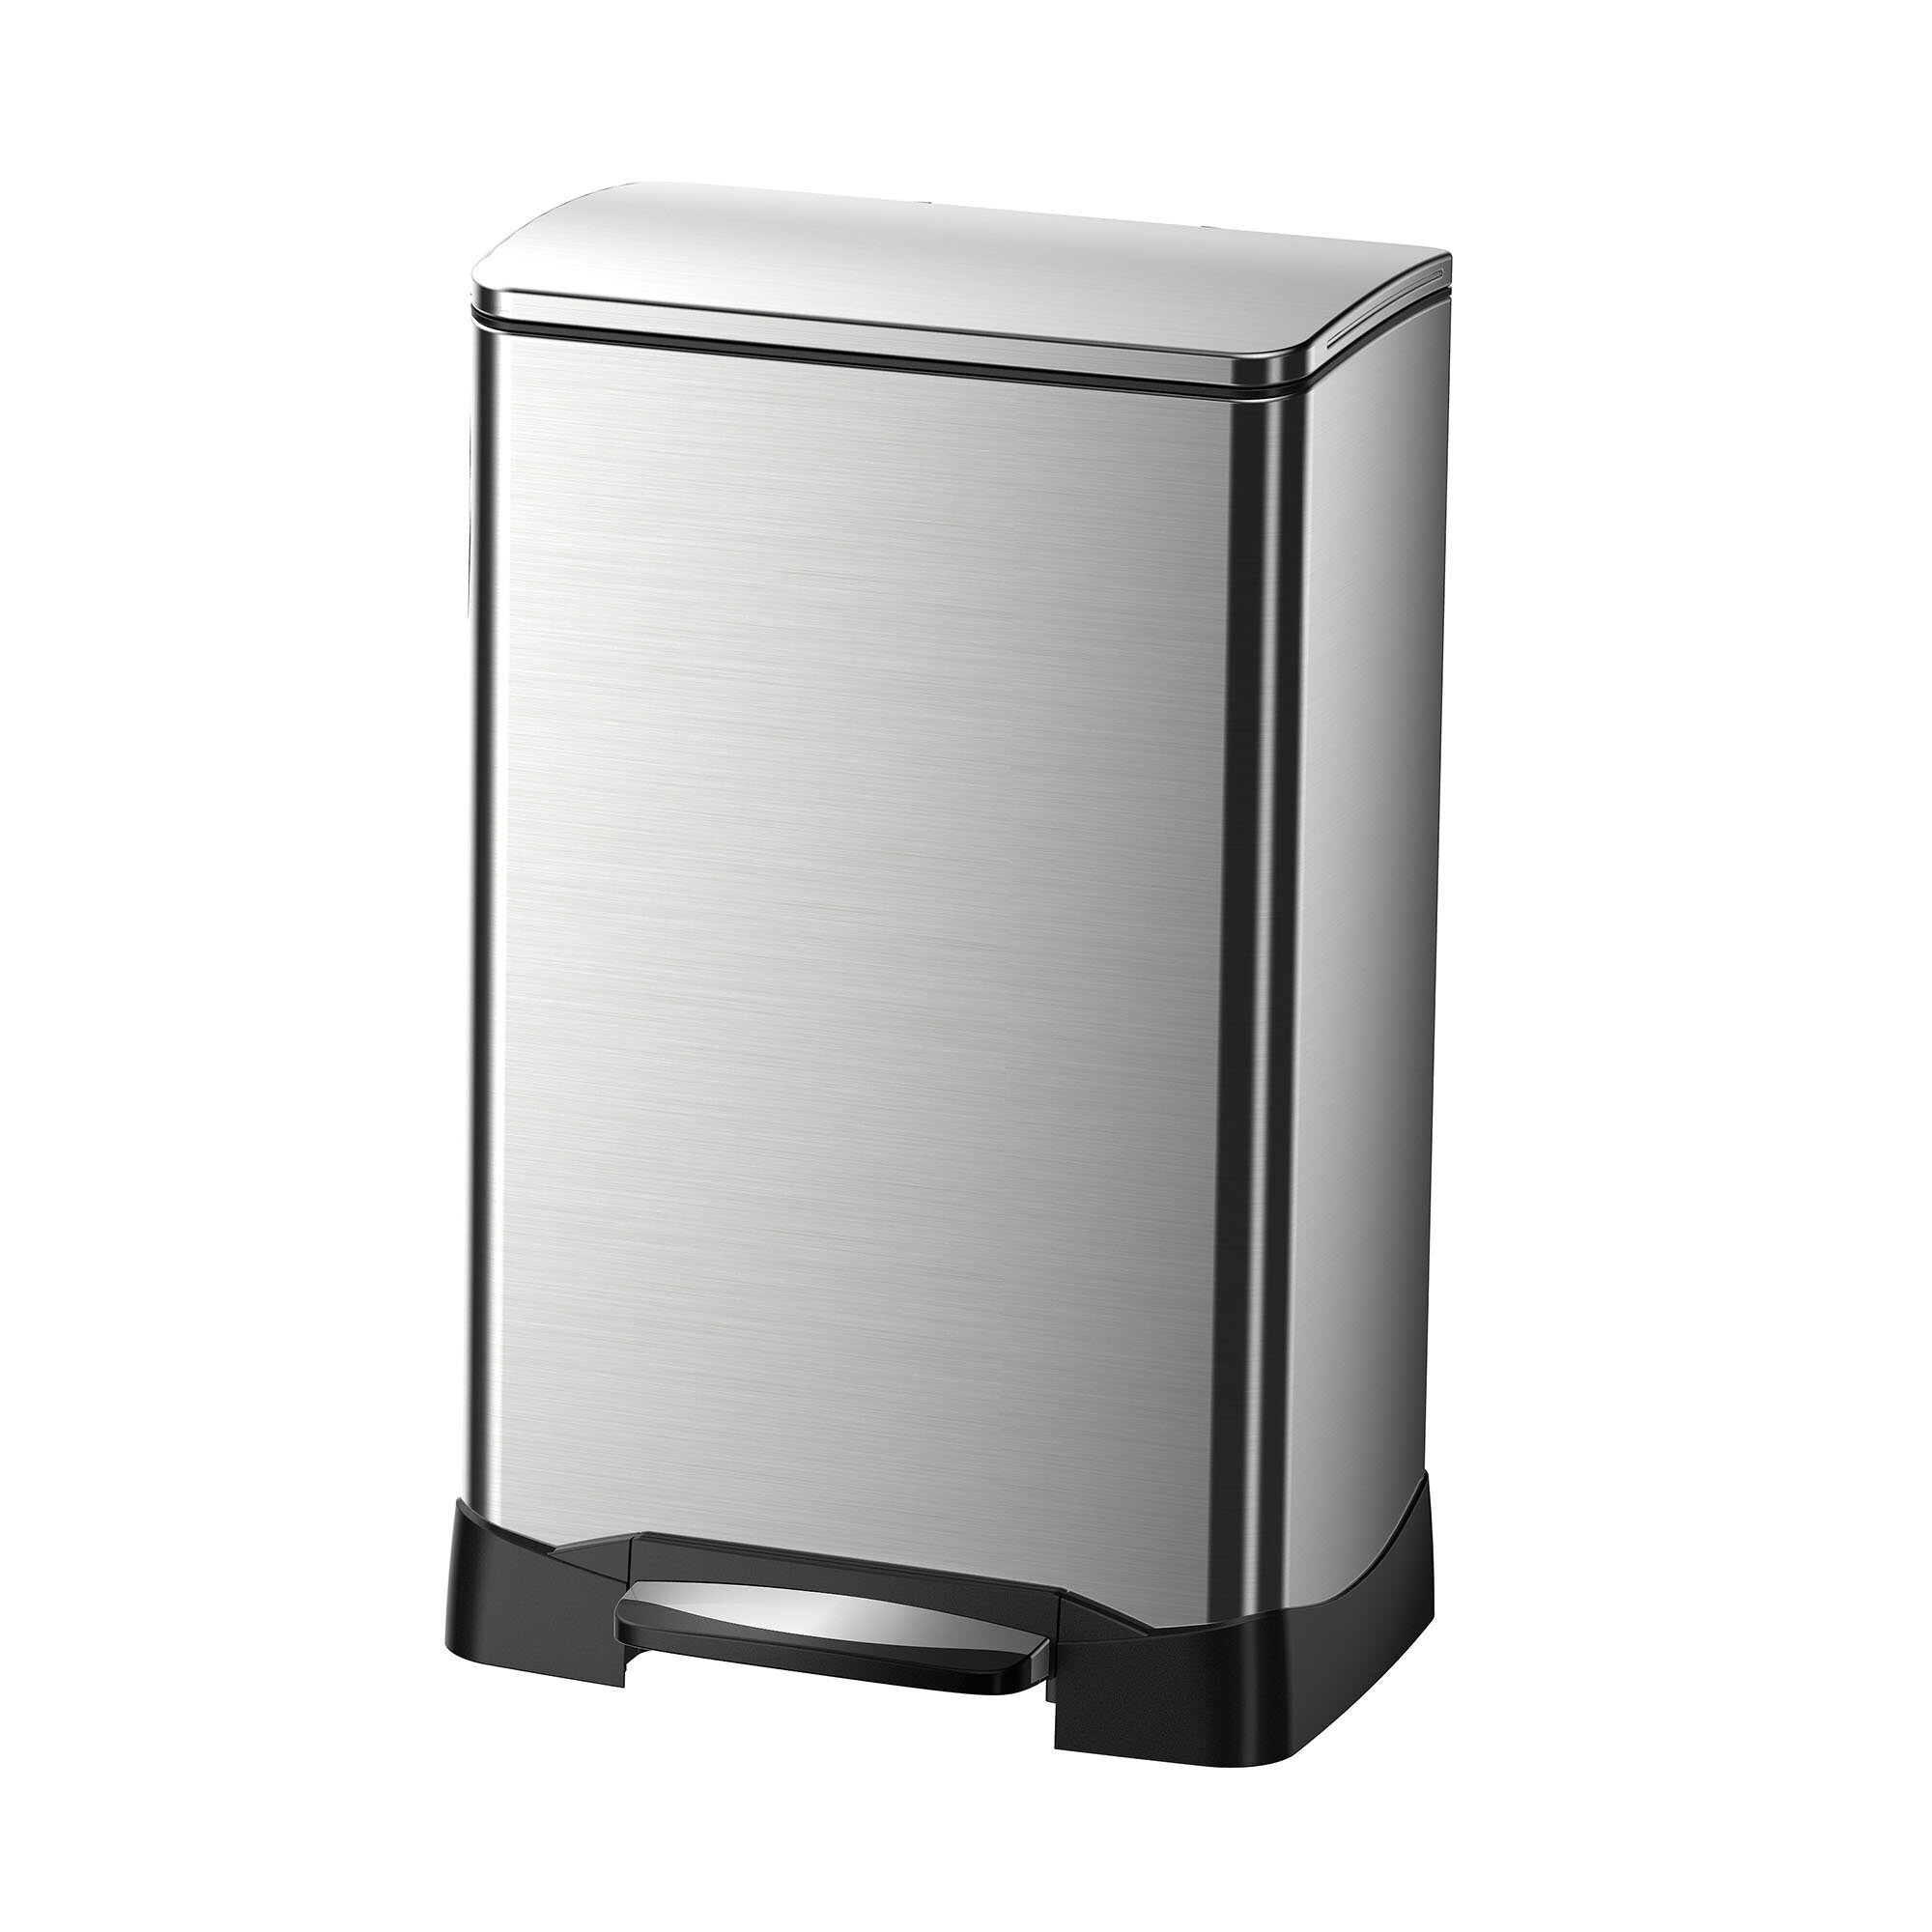 Household Essentials Neo Cube 10 5 Gallon Step Trash Can